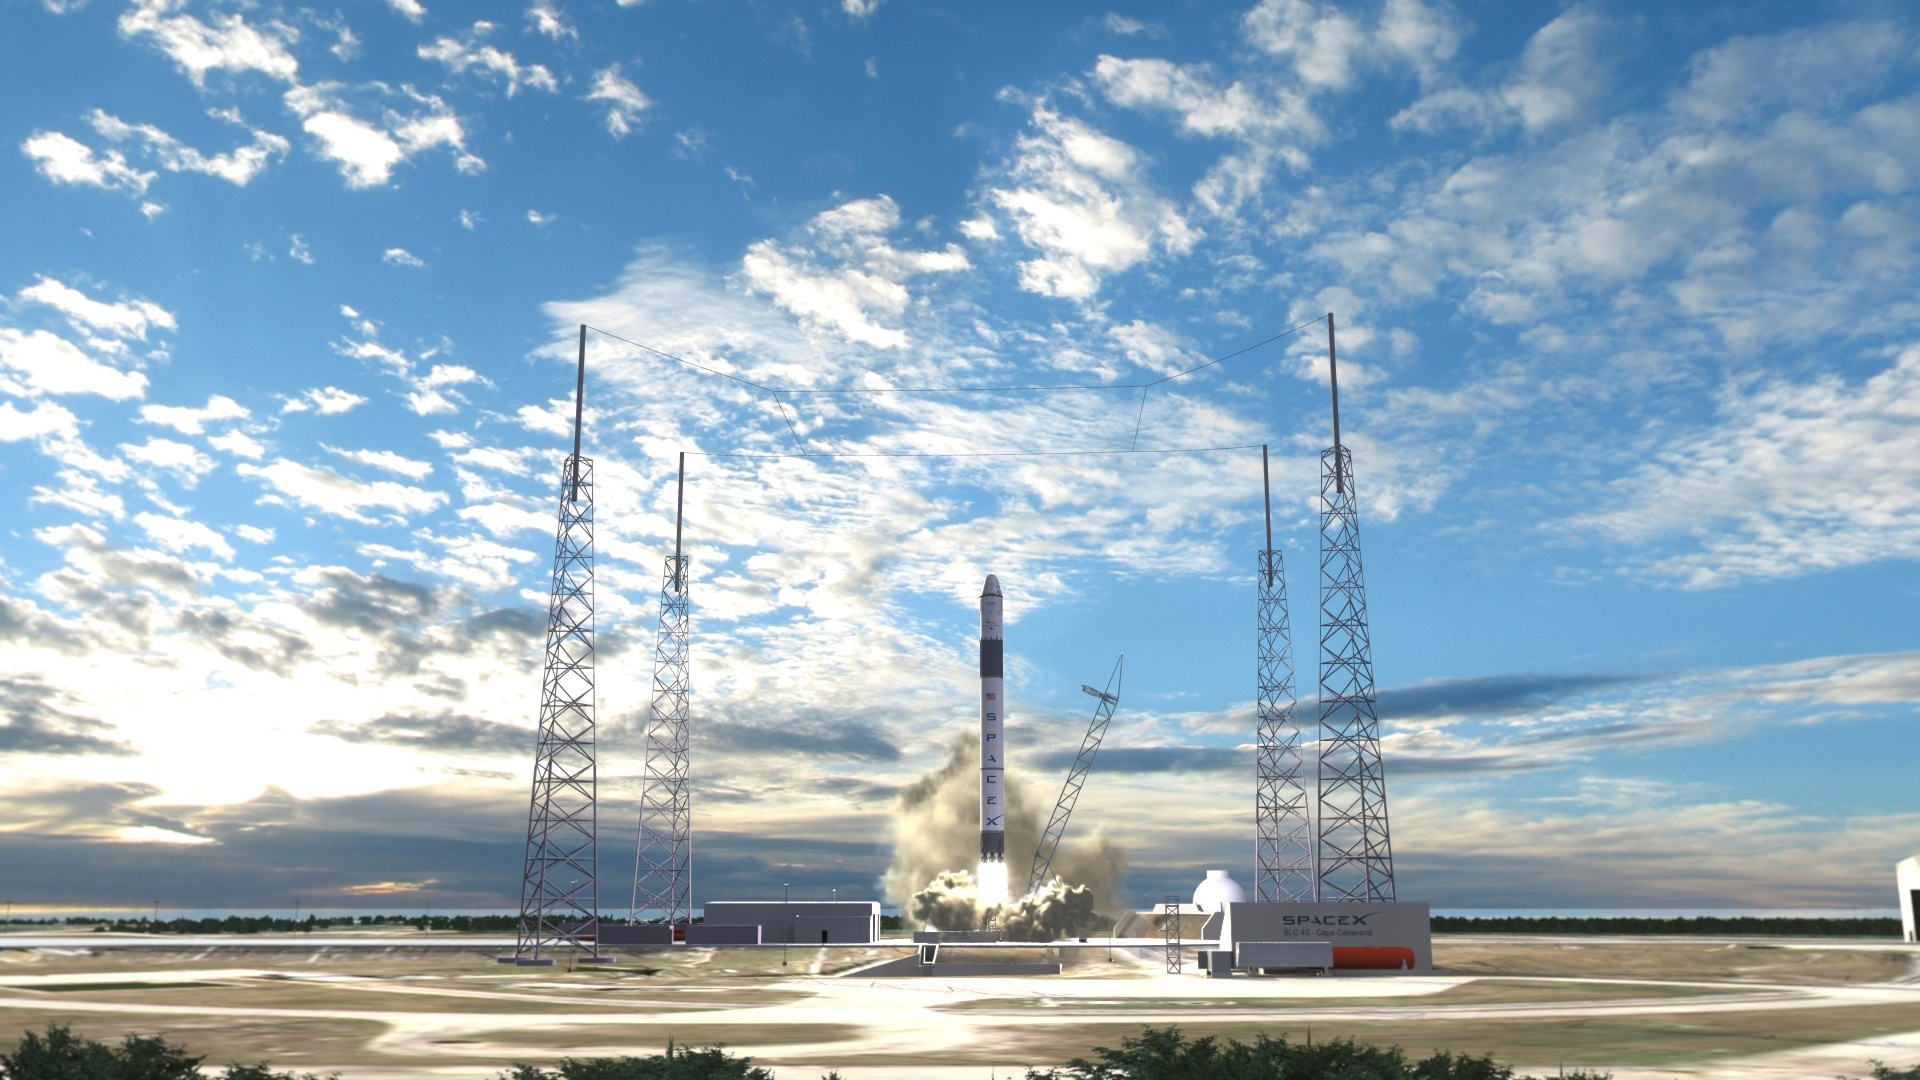 Watching A SpaceX Rocket Launch